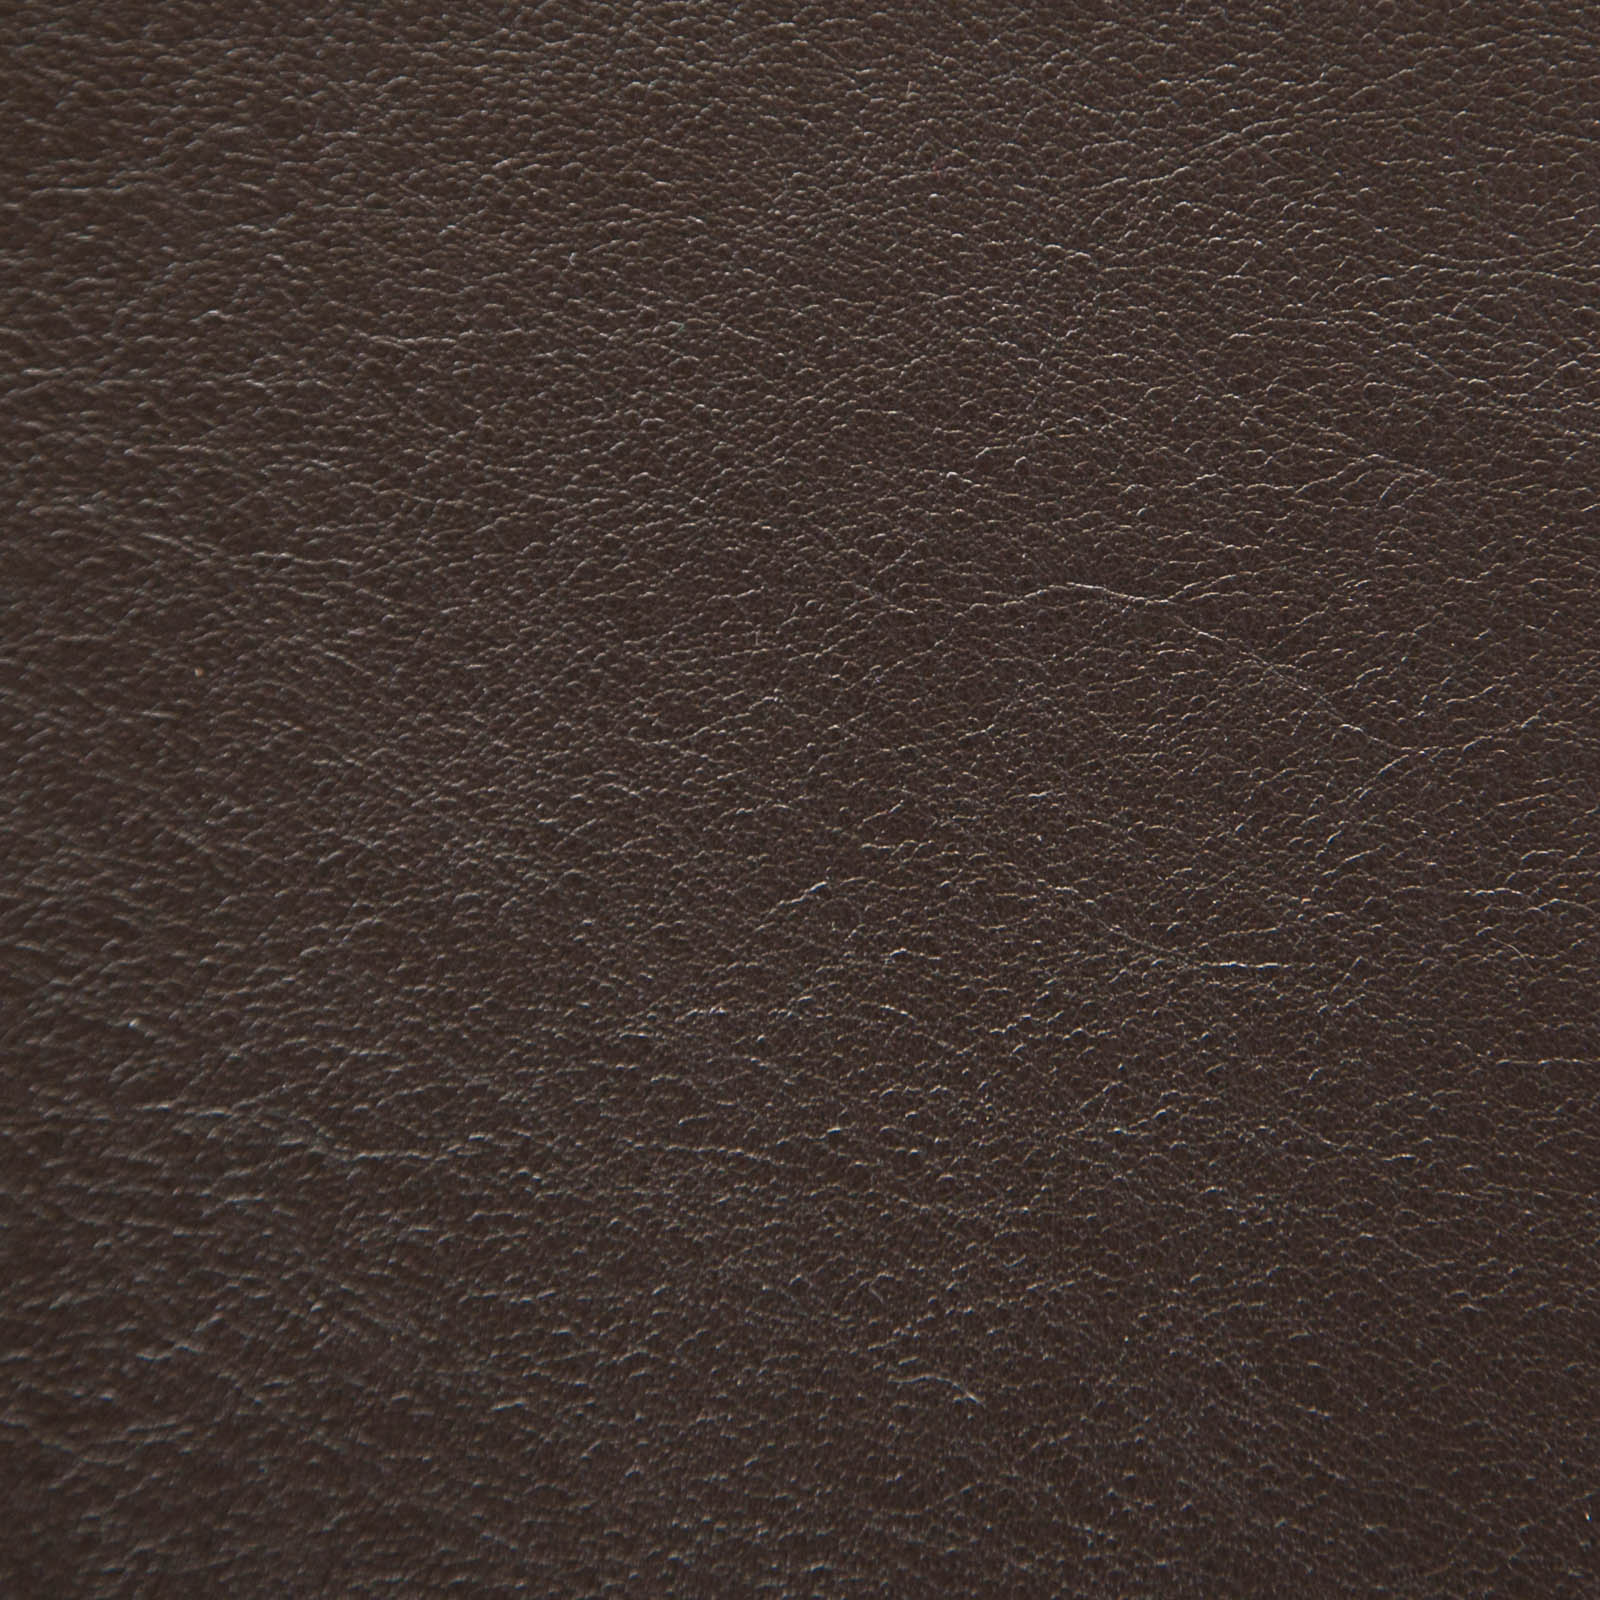 G Leather - Dark Brown